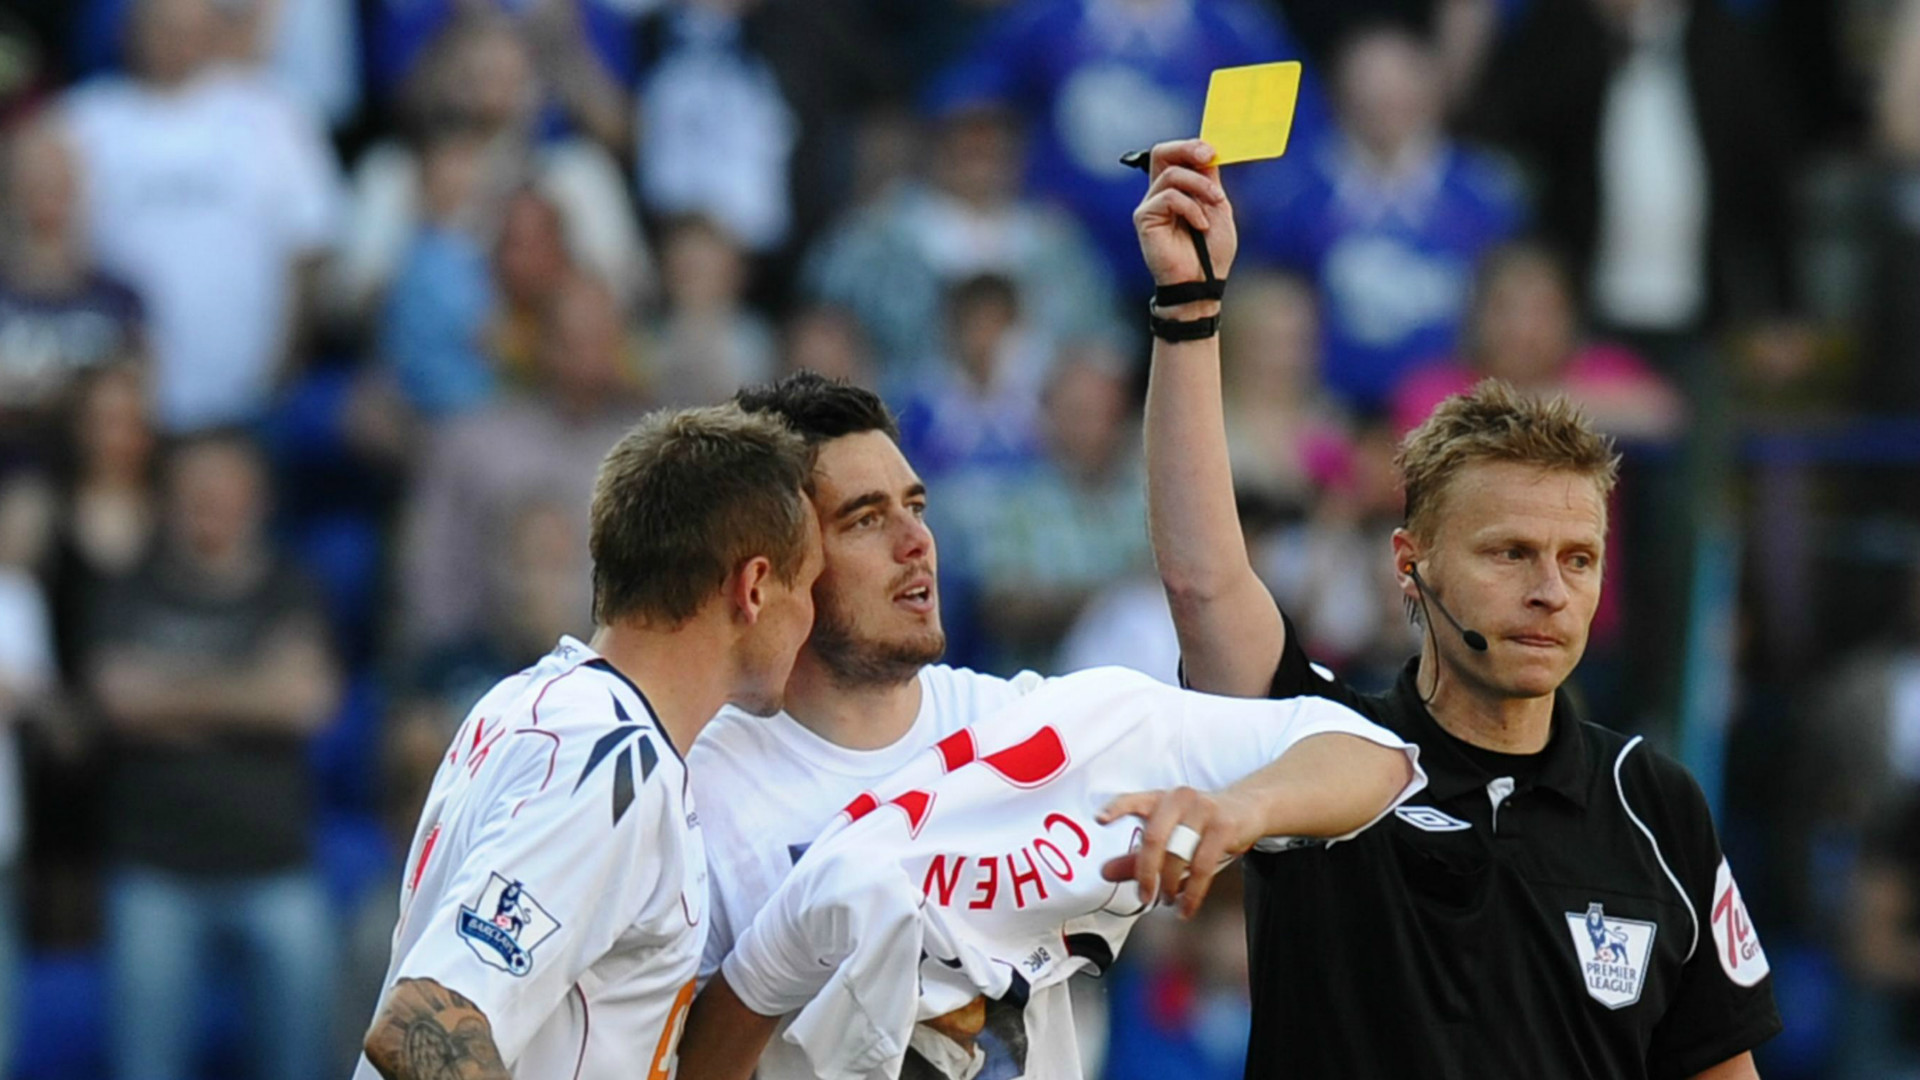 A player is booked for taking his shirt off.